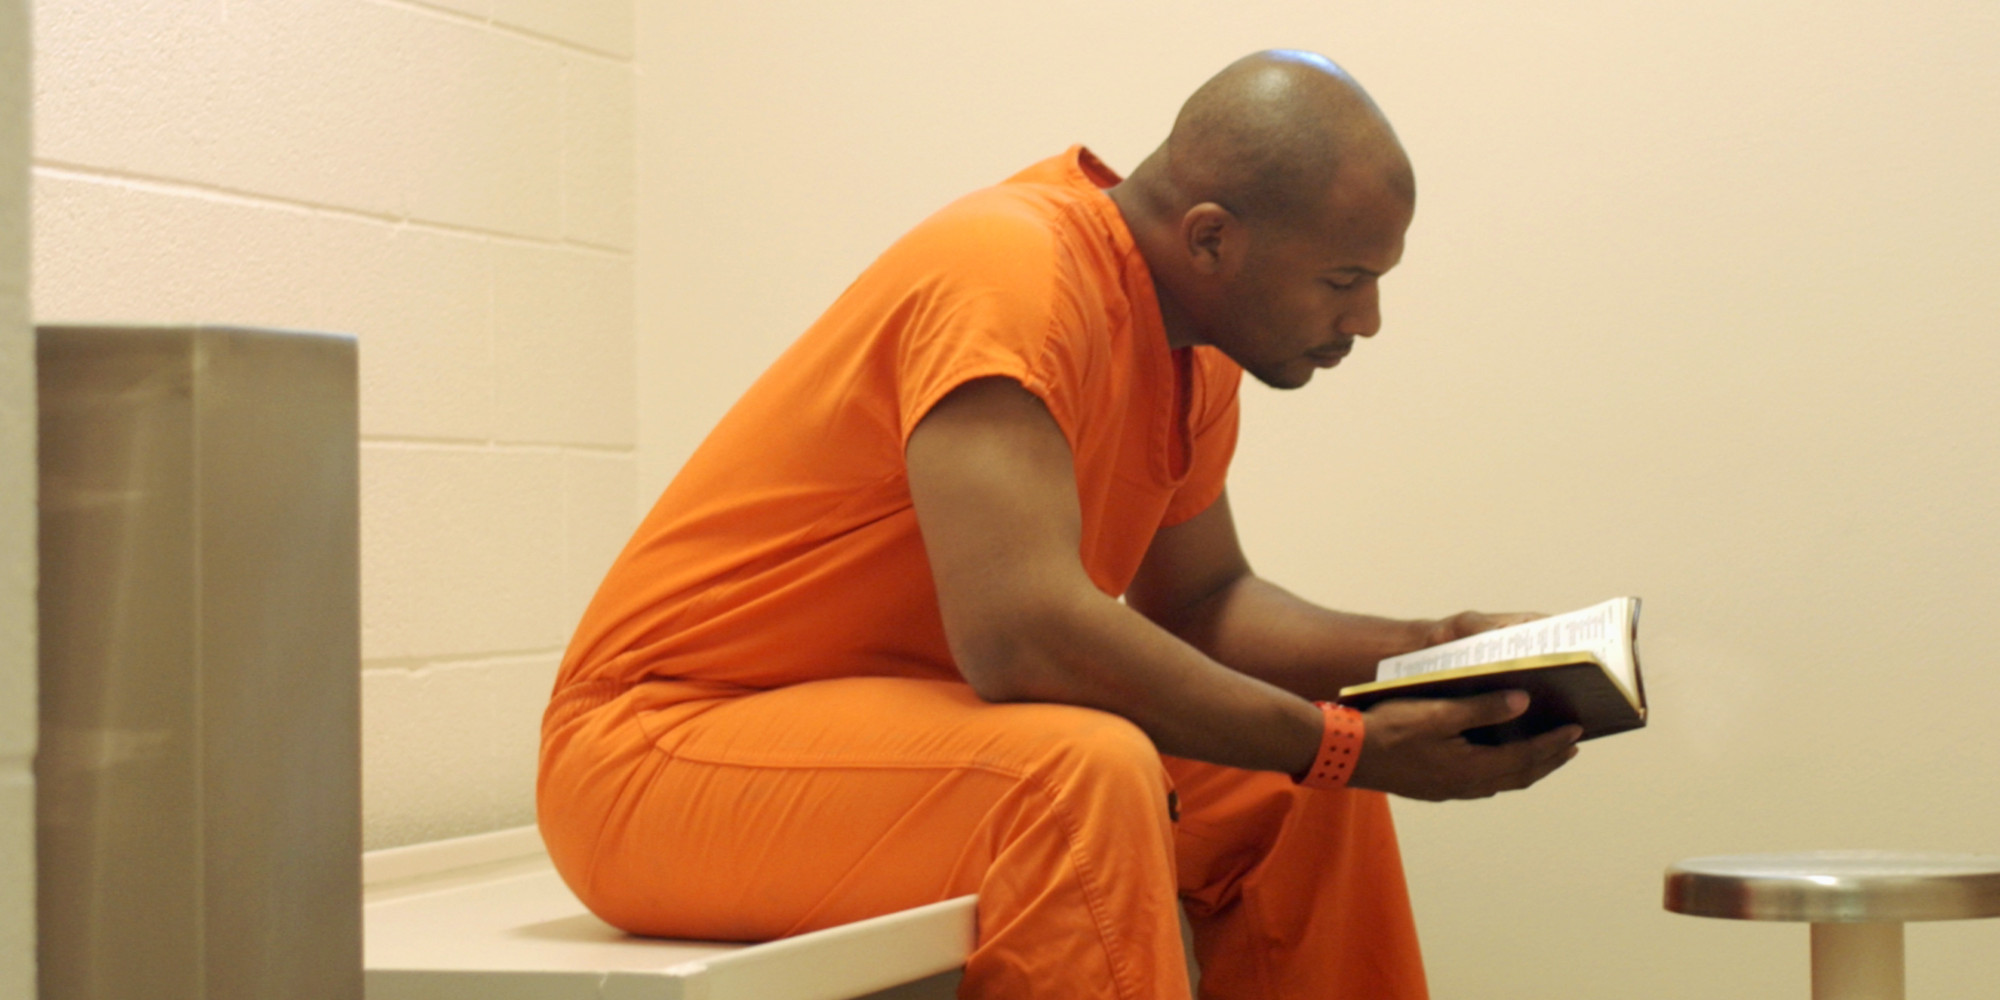 o-PRISONER-READING-facebook